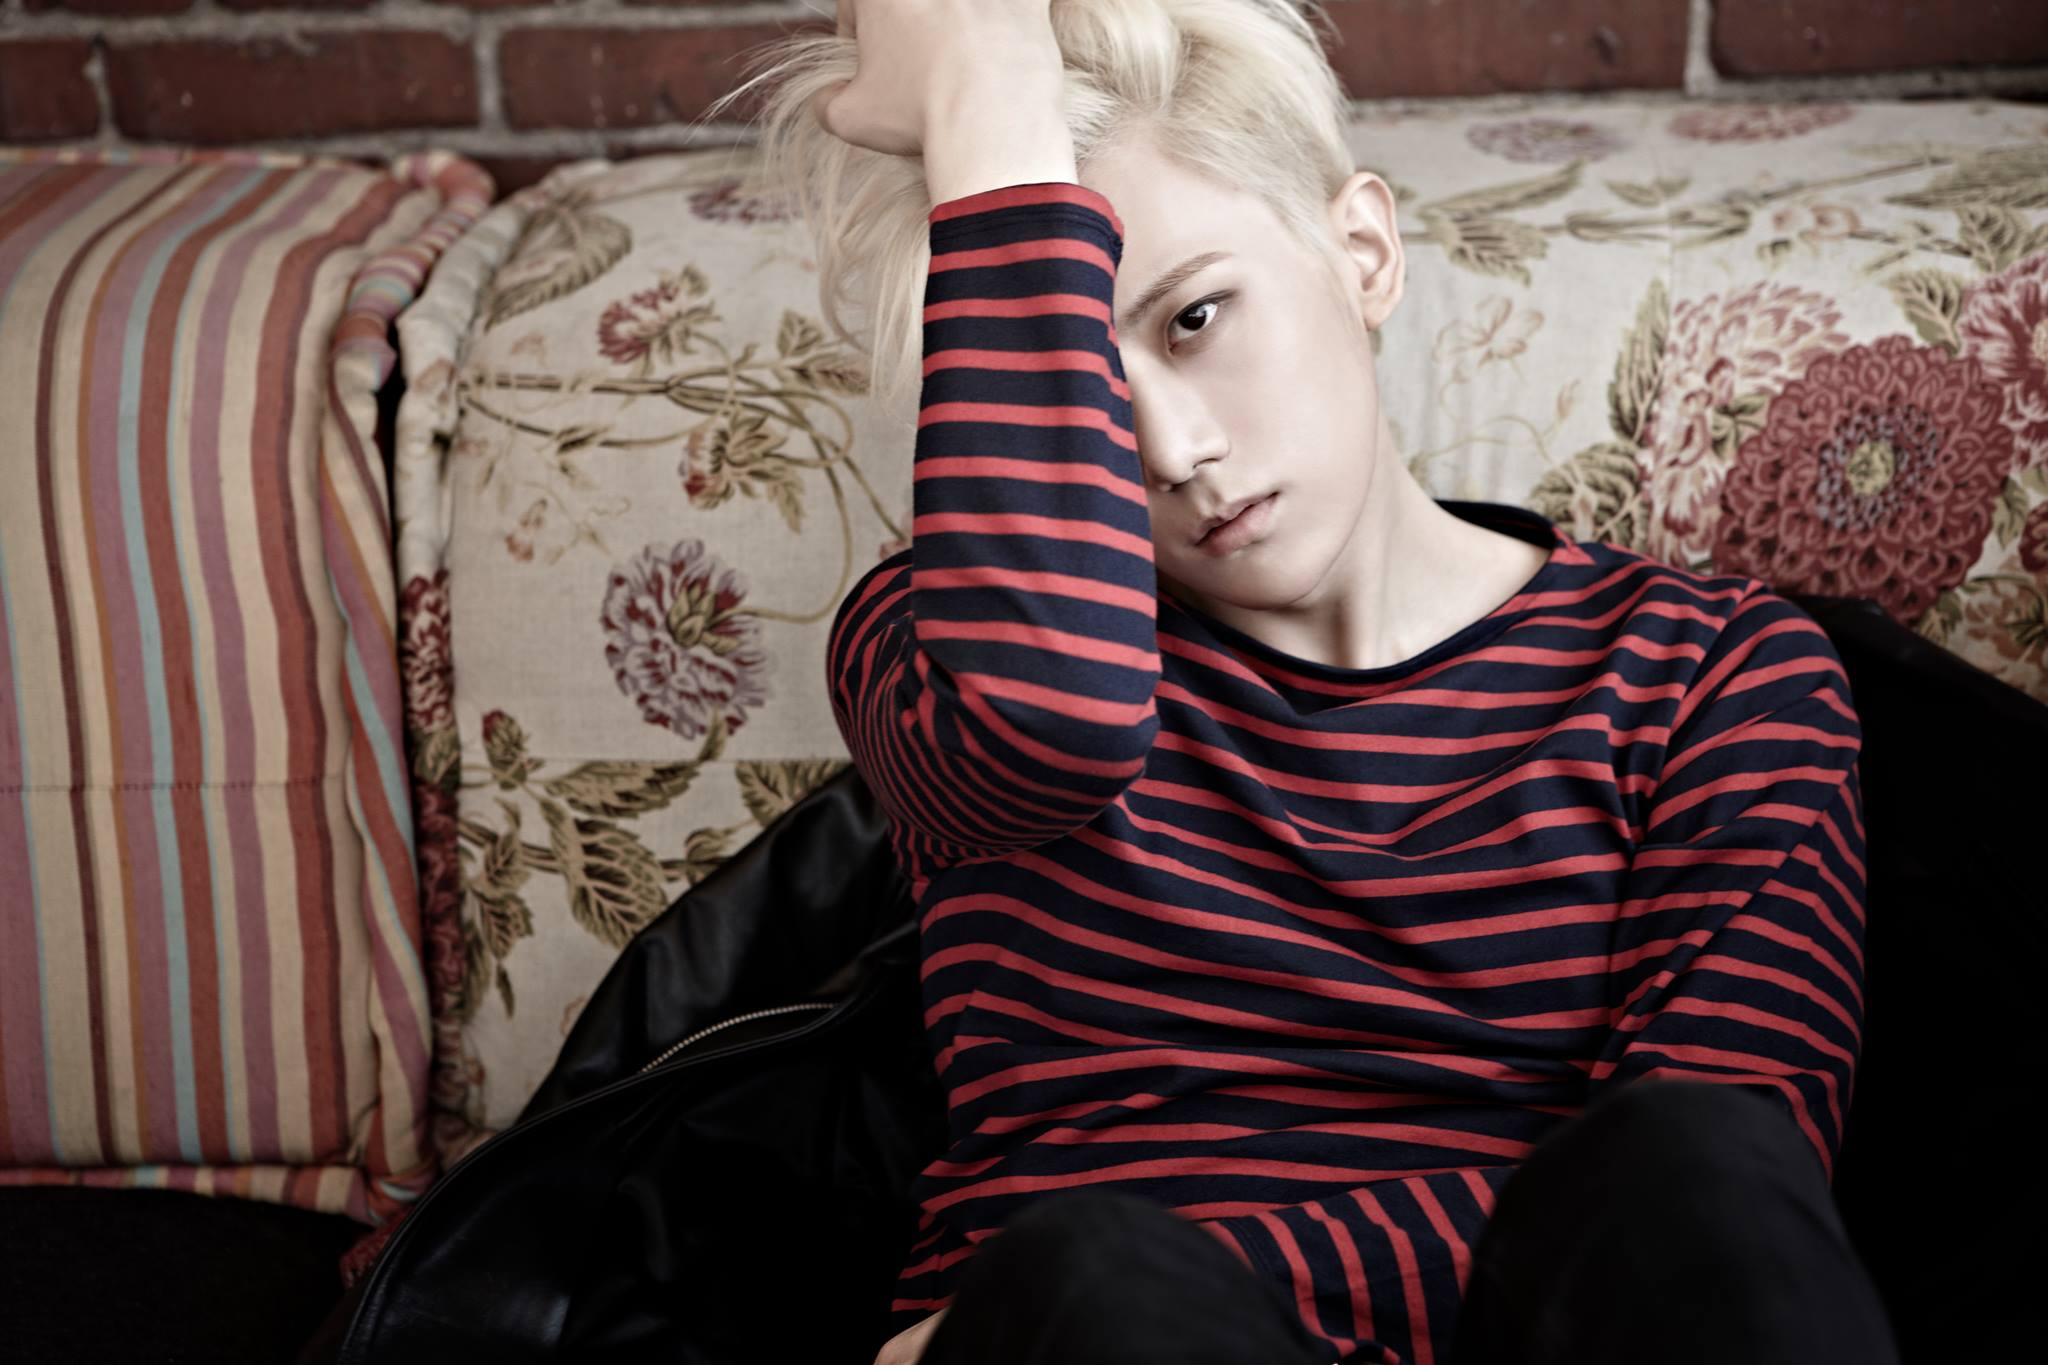 BEAST's Jang Hyunseung Apologizes to Fans Regarding Controversy